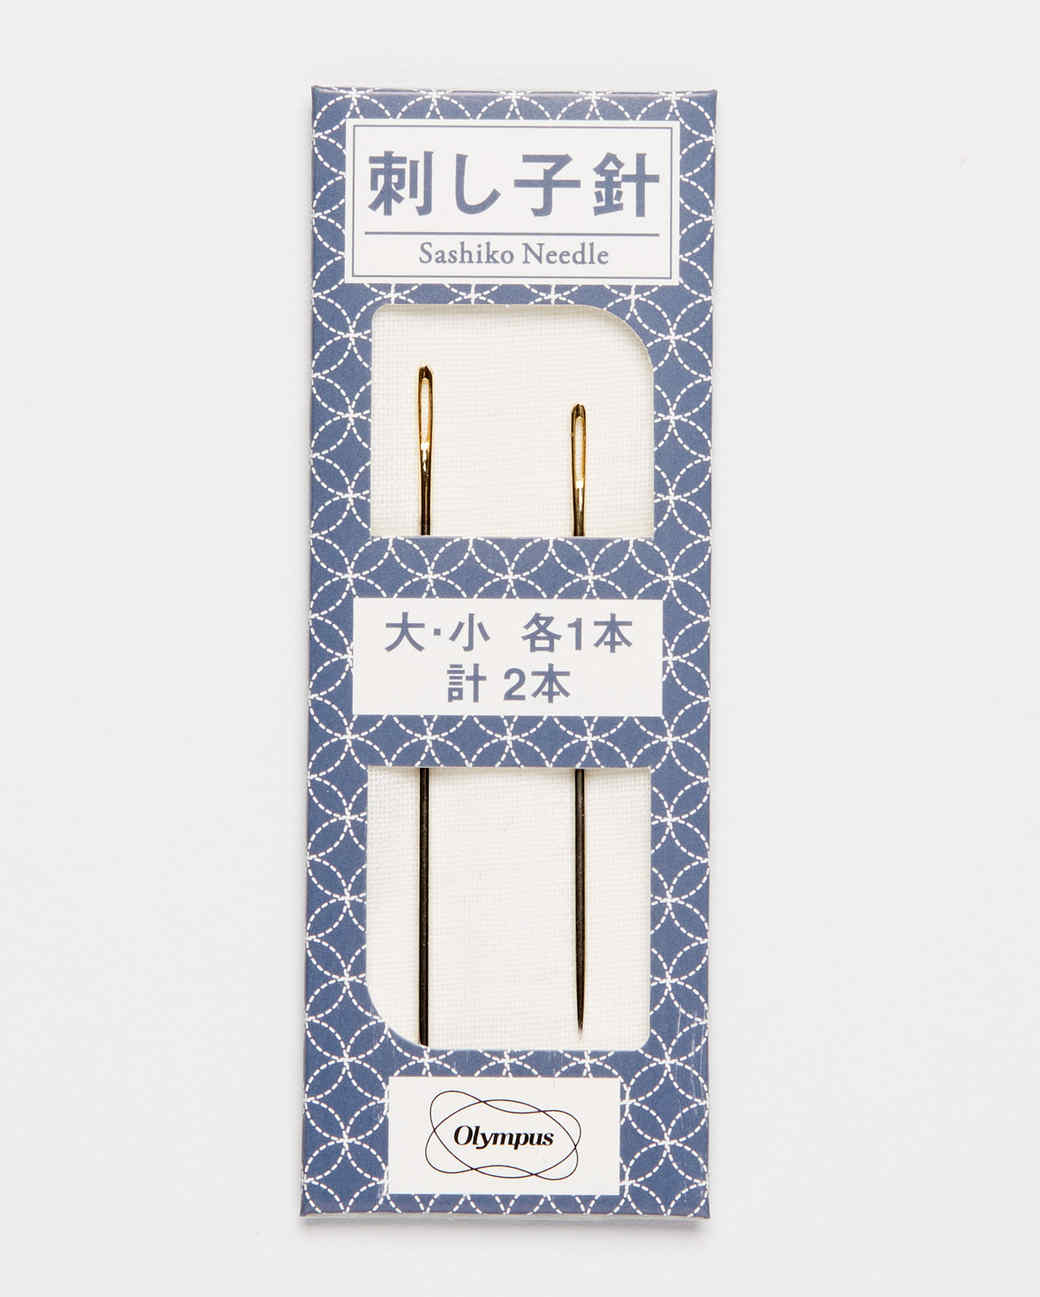 packaged sashiko embroidery needles against a white background